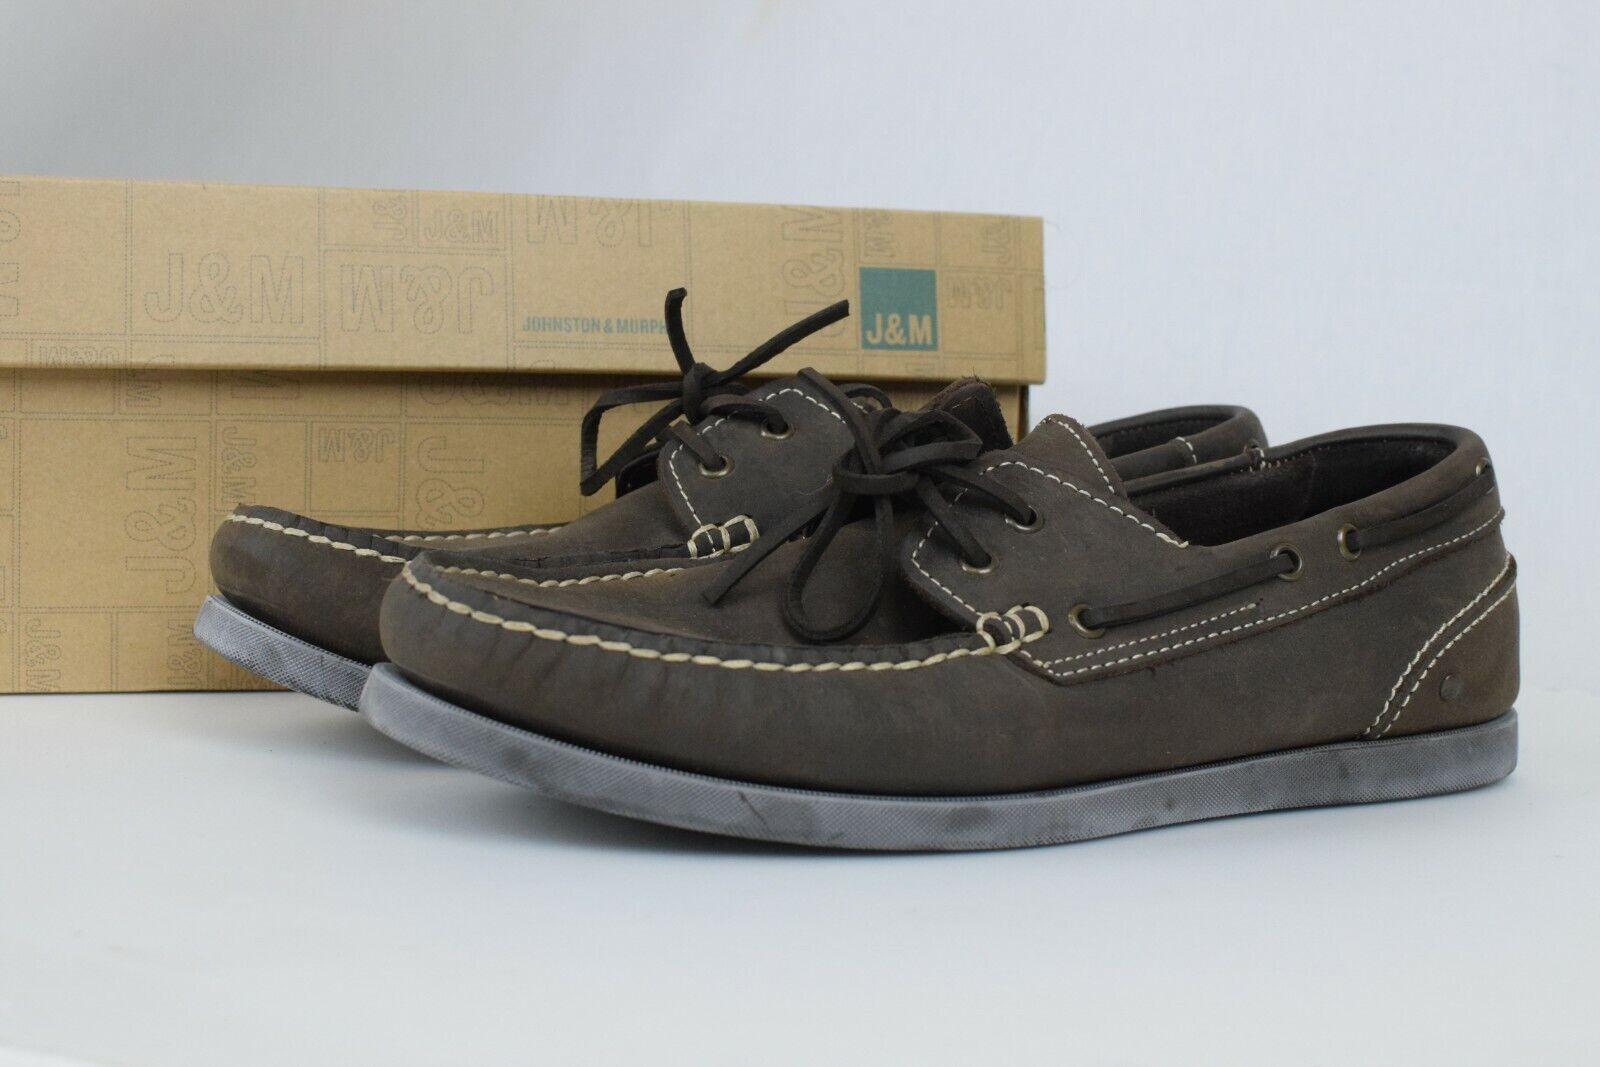 Johnston & Murphy Men's Barnaby Dkbrn Boat shoes Brown Size US 10 1 2 M